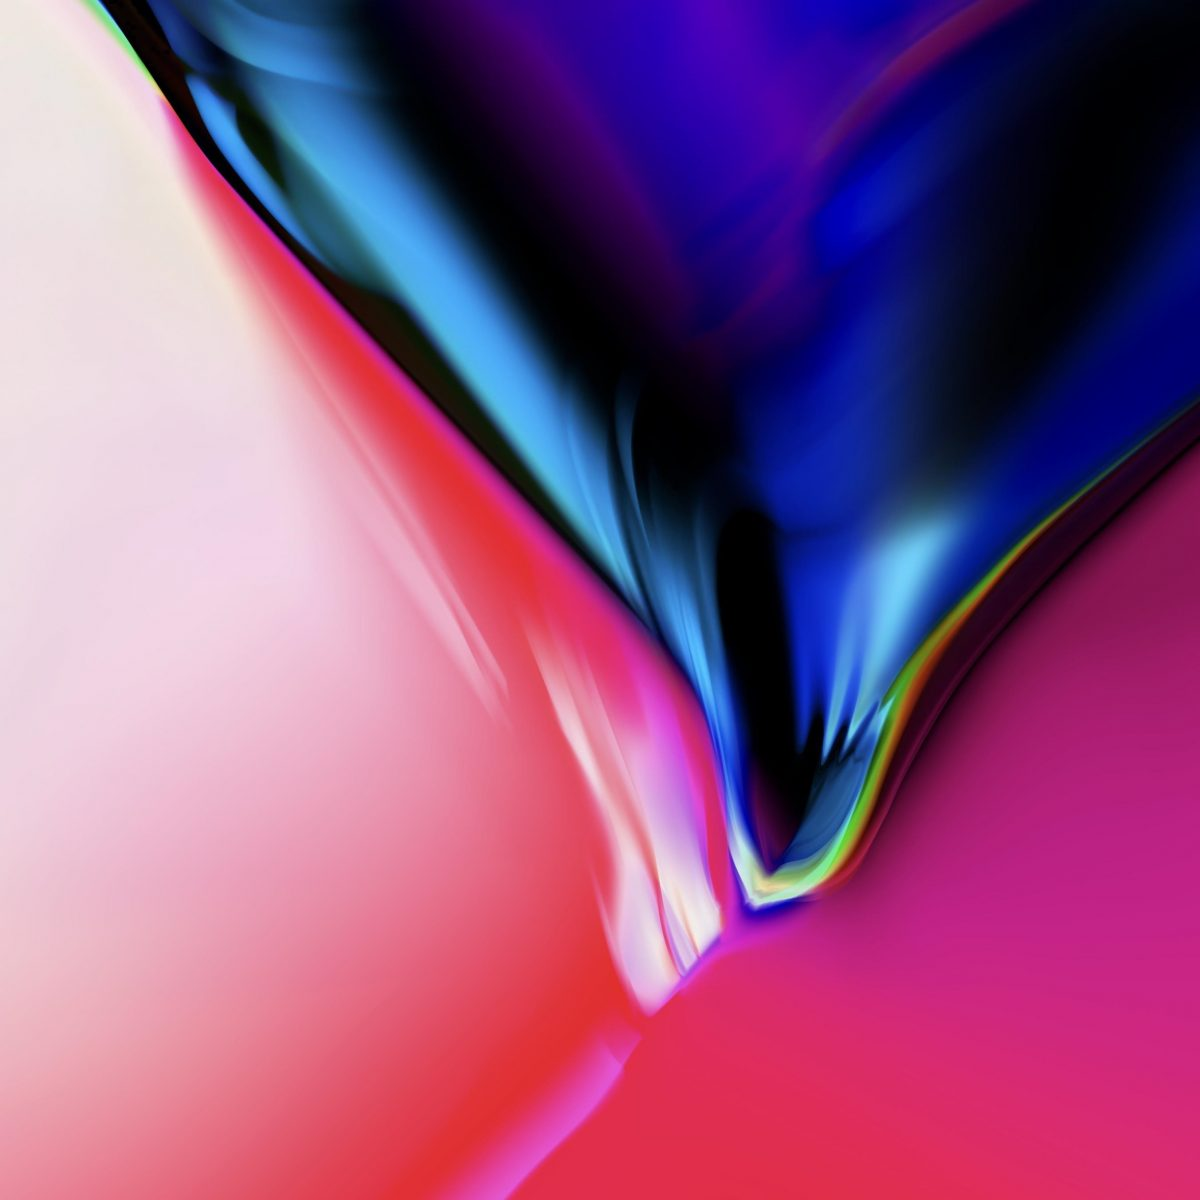 47 hd iphone x wallpapers - (updated 2018)